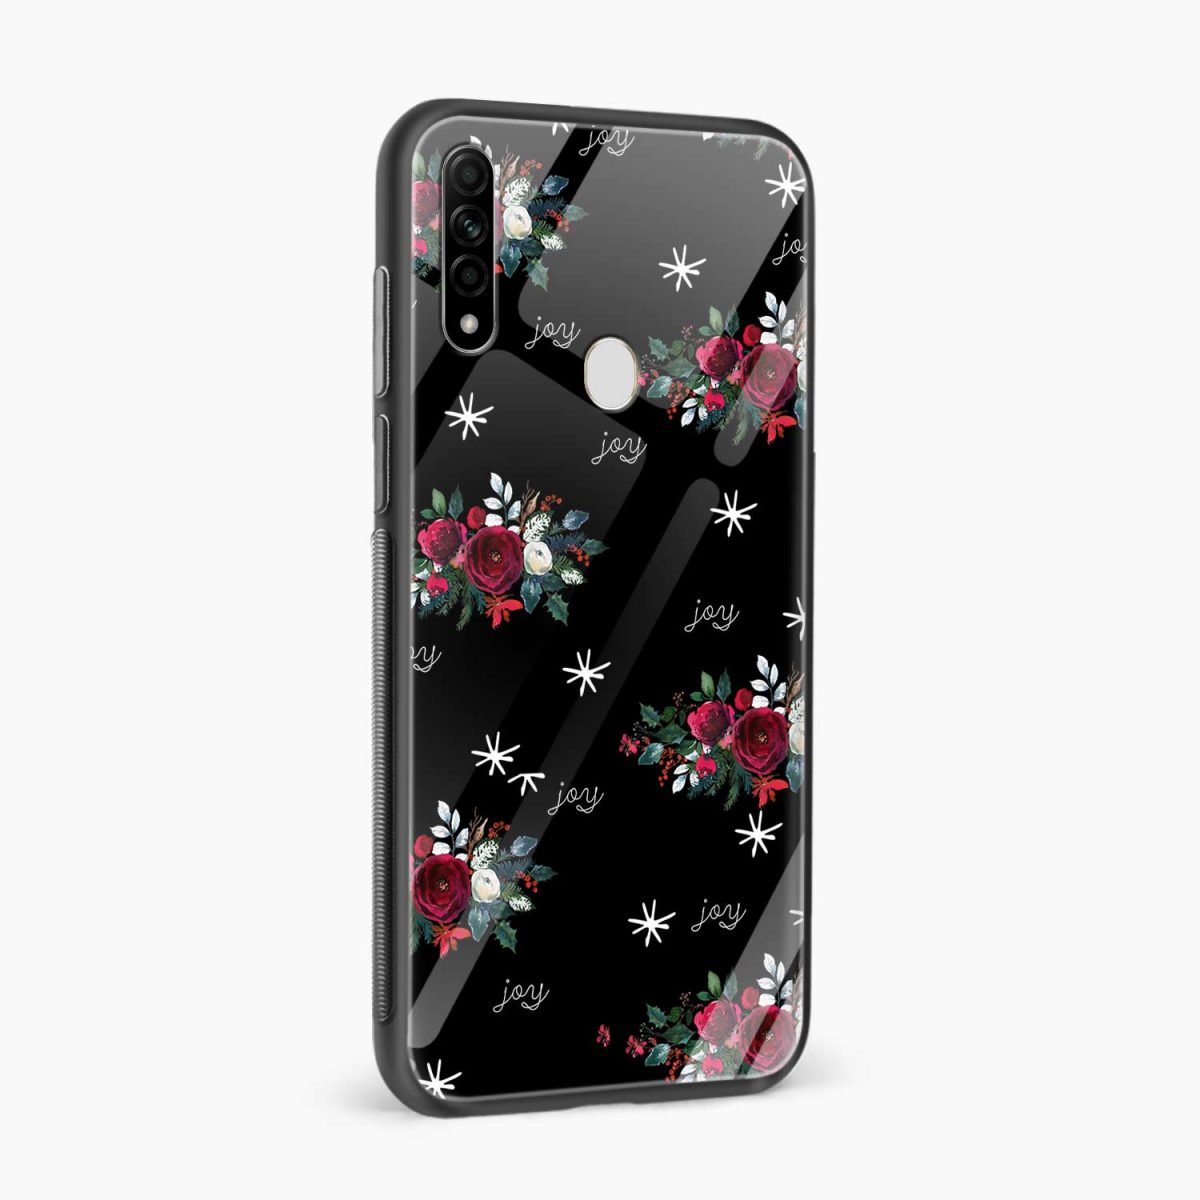 joy floral black colored side view oppo a31 back cover